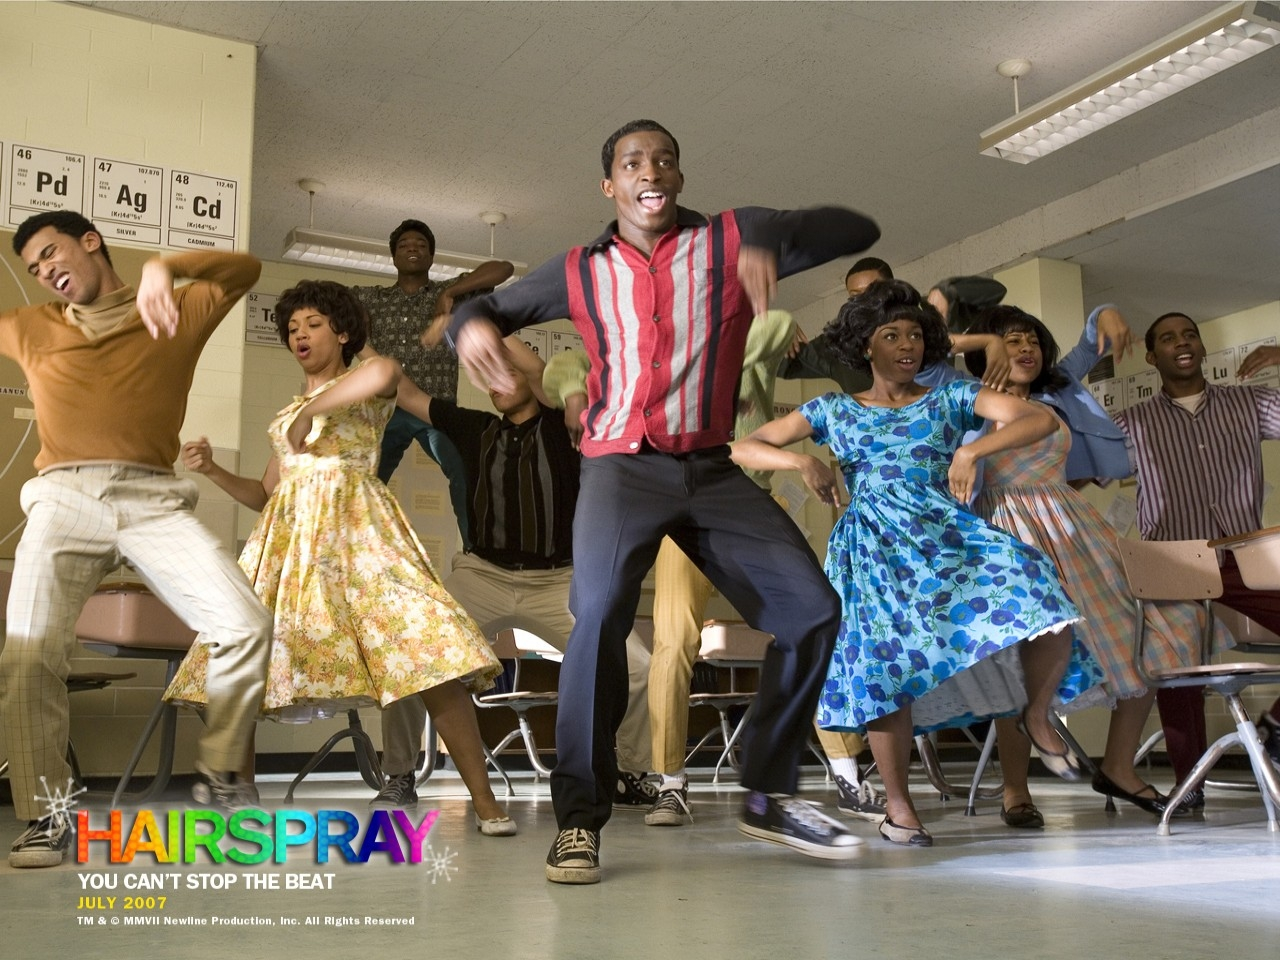 Wallpaper del film Hairspray